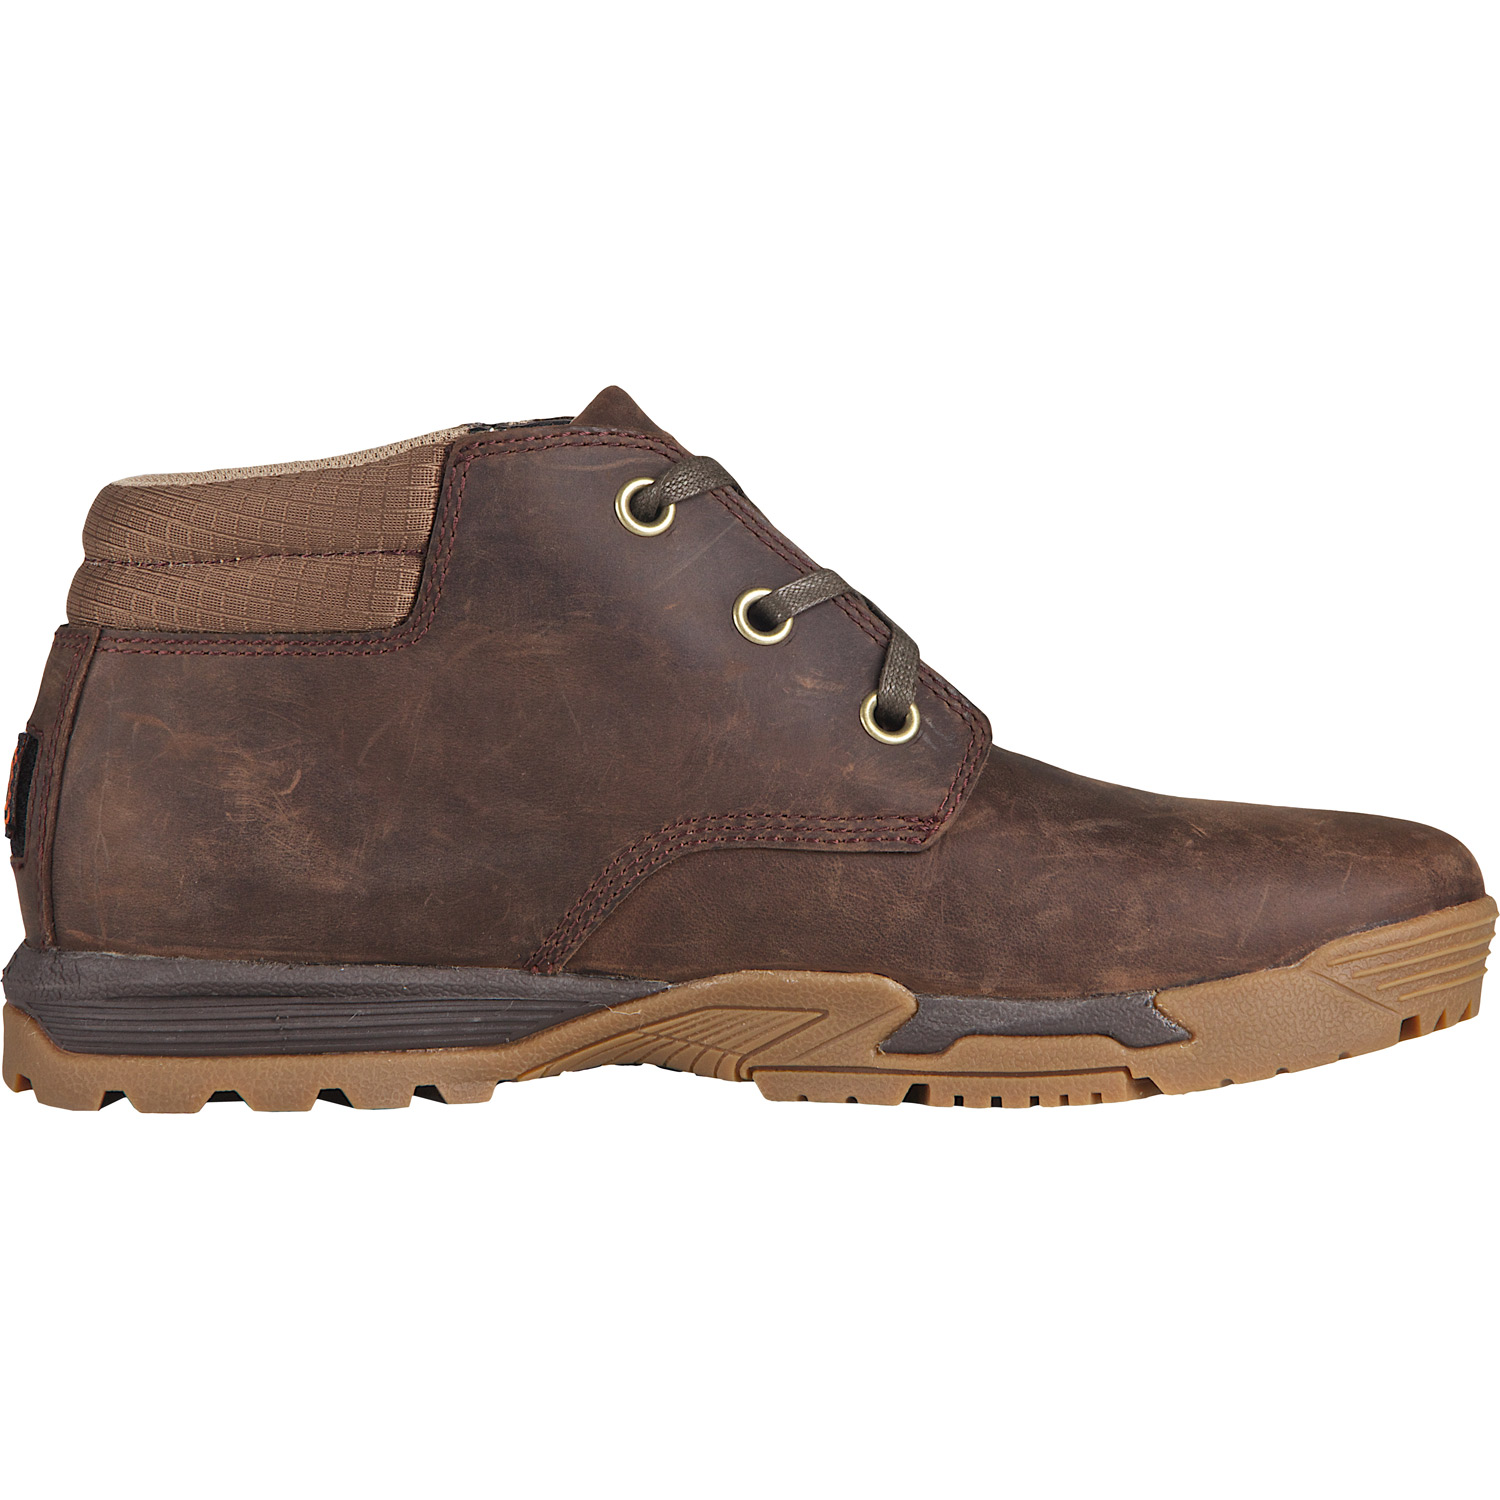 5.11 Tactical Pursuit Chukka Boots from